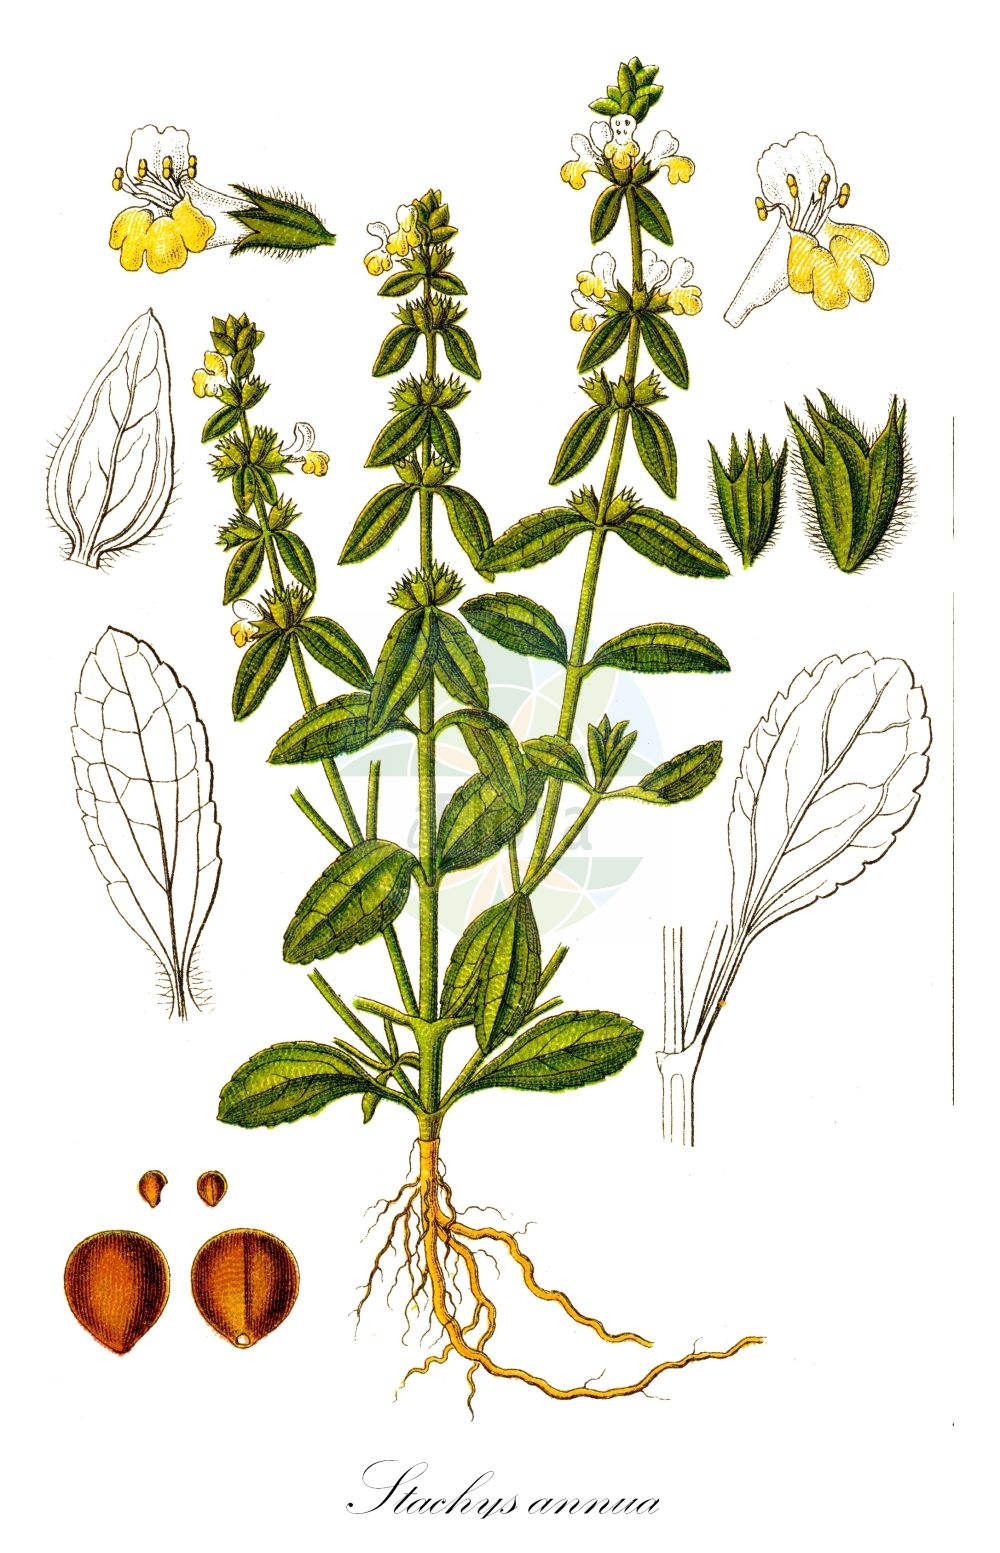 Historische Abbildung von Stachys annua (Einjaehriger Ziest - Annual Yellow-woundwort). Das Bild zeigt Blatt, Bluete, Frucht und Same. ---- Historical Drawing of Stachys annua (Einjaehriger Ziest - Annual Yellow-woundwort).The image is showing leaf, flower, fruit and seed.(Stachys annua,Einjaehriger Ziest,Annual Yellow-woundwort,Betonica annua,Olisia annua,Prasium stachydium,,Einjahrs-Ziest,Annual Woundwort,Annual Hedgenettle,Hedge-nettle Betony,Stachys,Ziest,Hedgenettle,Lamiaceae,Lippenbluetengewaechse;Lippenbluetler,Nettle family,Blatt,Bluete,Frucht,Same,leaf,flower,fruit,seed,Sturm (1796f))